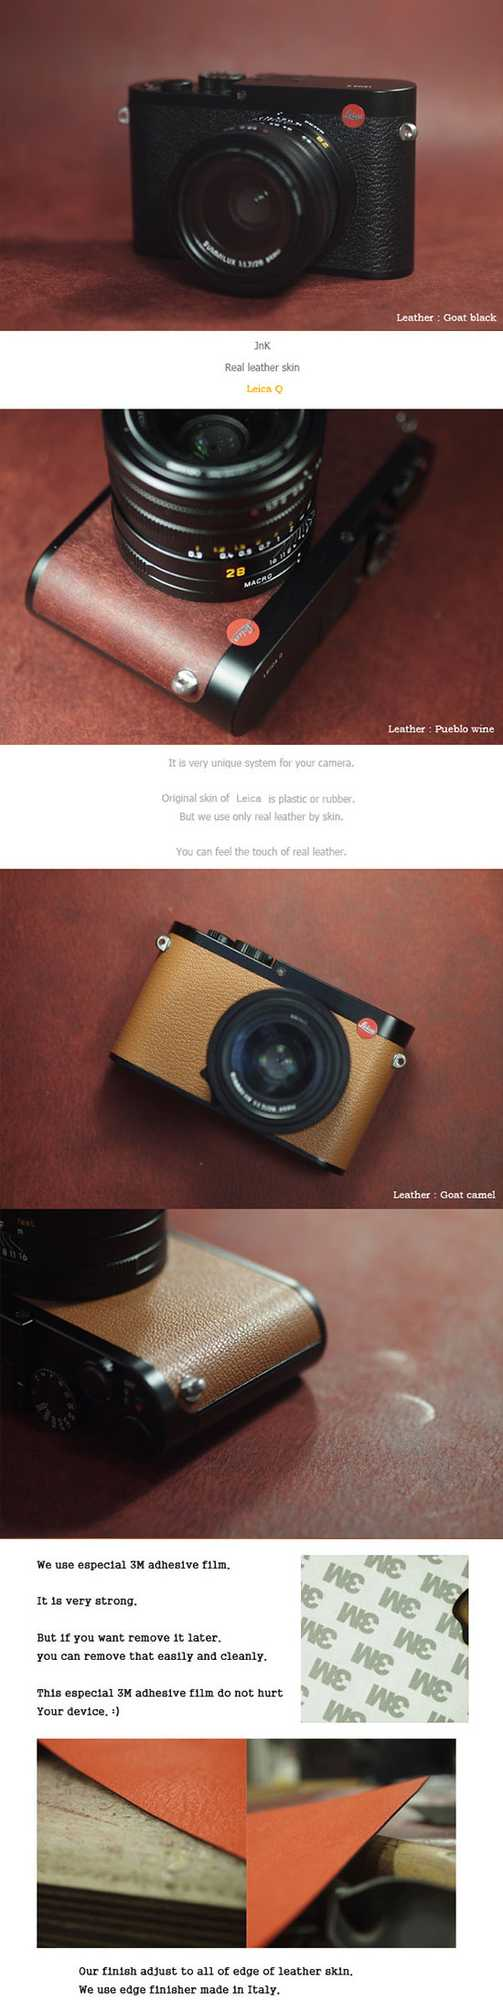 Arte-Di-Mano-leather-skin-for-Leica-Q-camera